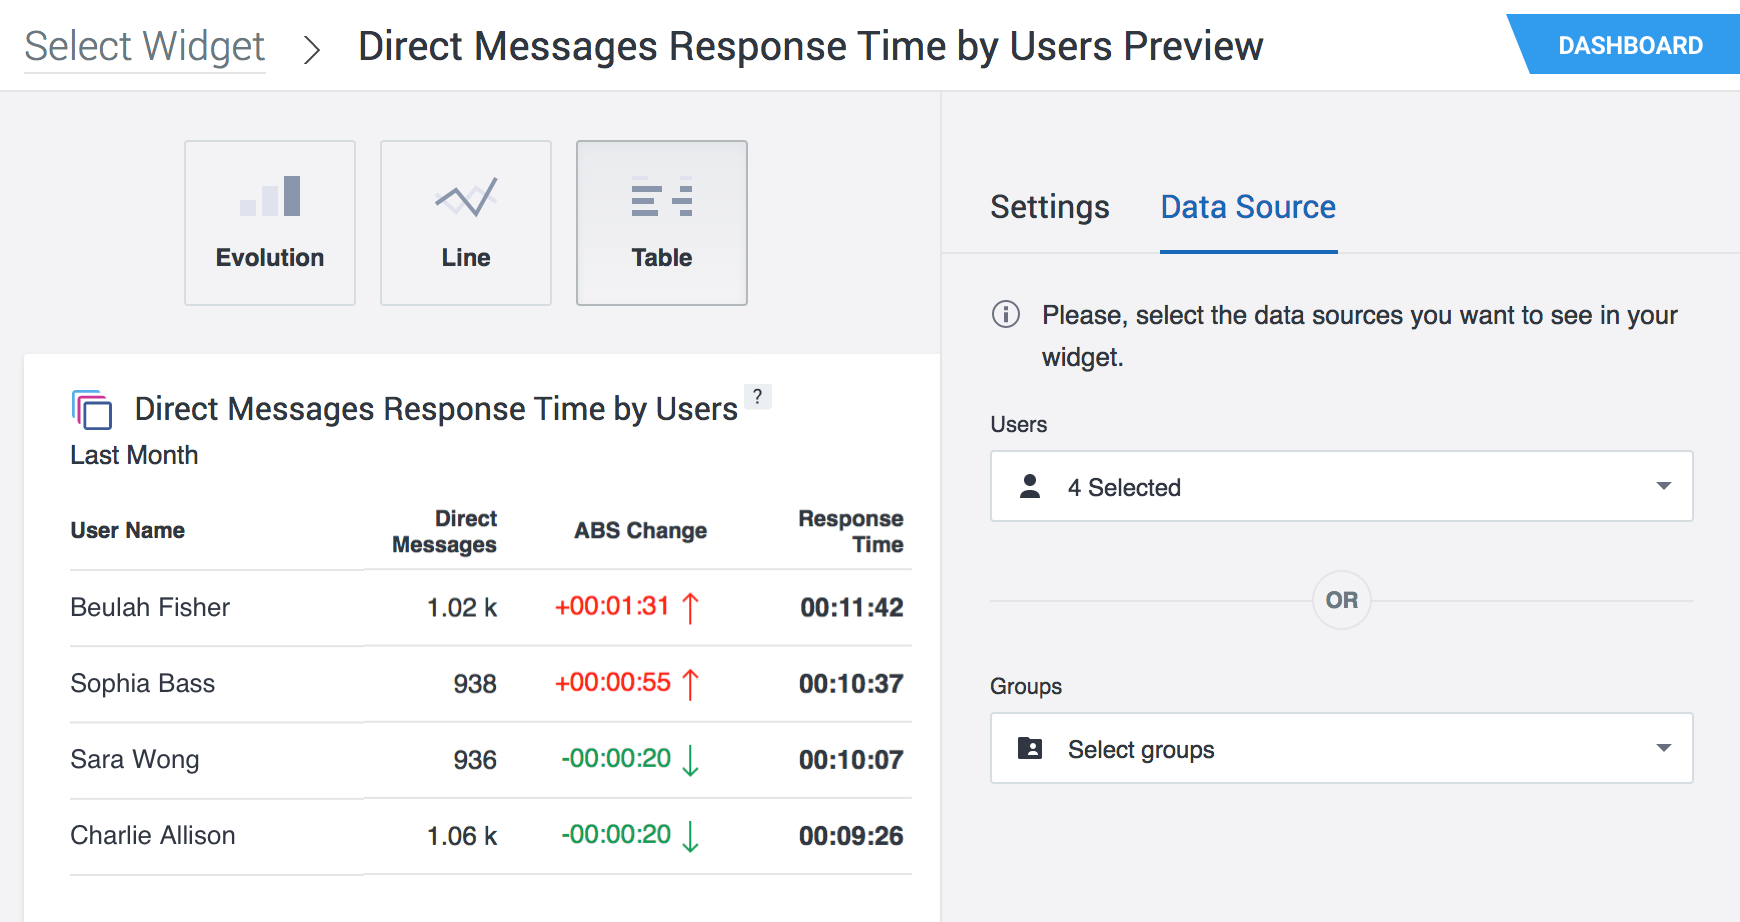 Socialbakers_Dashboard_Community_Reporting_Direct_Messages_Response_Time_by_Users_Table_2x.png